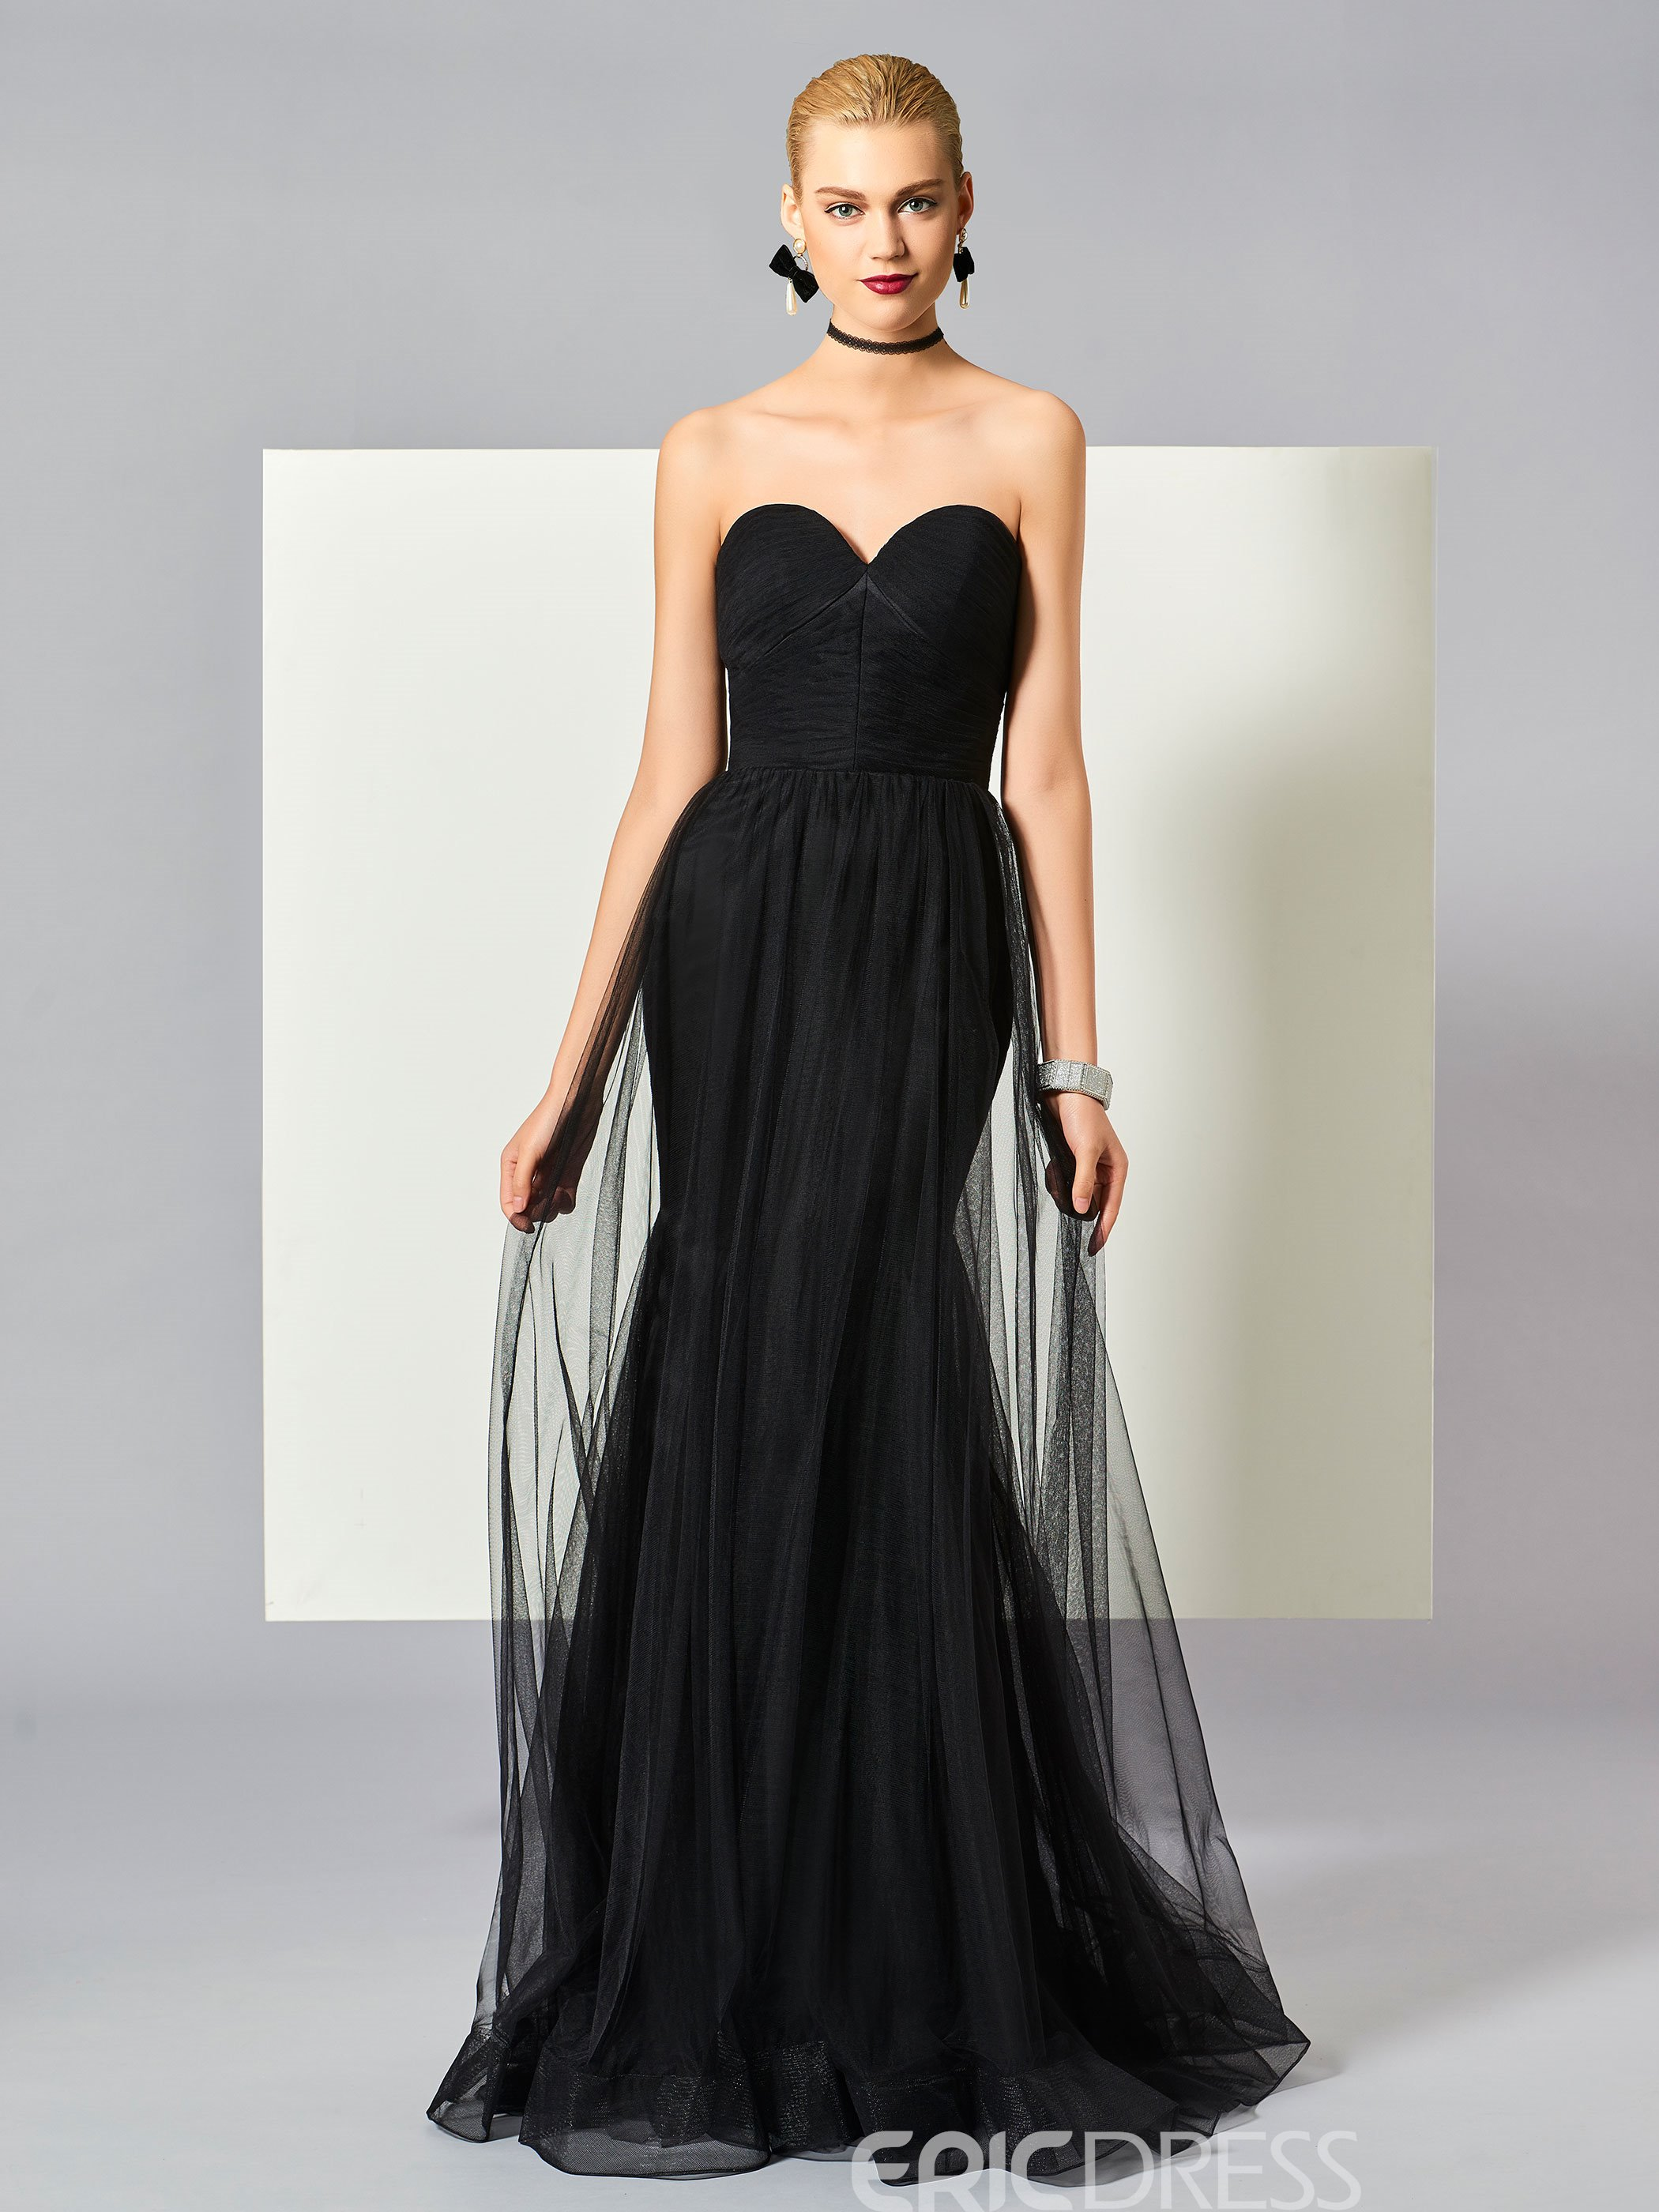 38812192b3a4ce Ericdress Sexy Black Sweetheart Zipper-Up Floor Length Mermaid Evening Dress